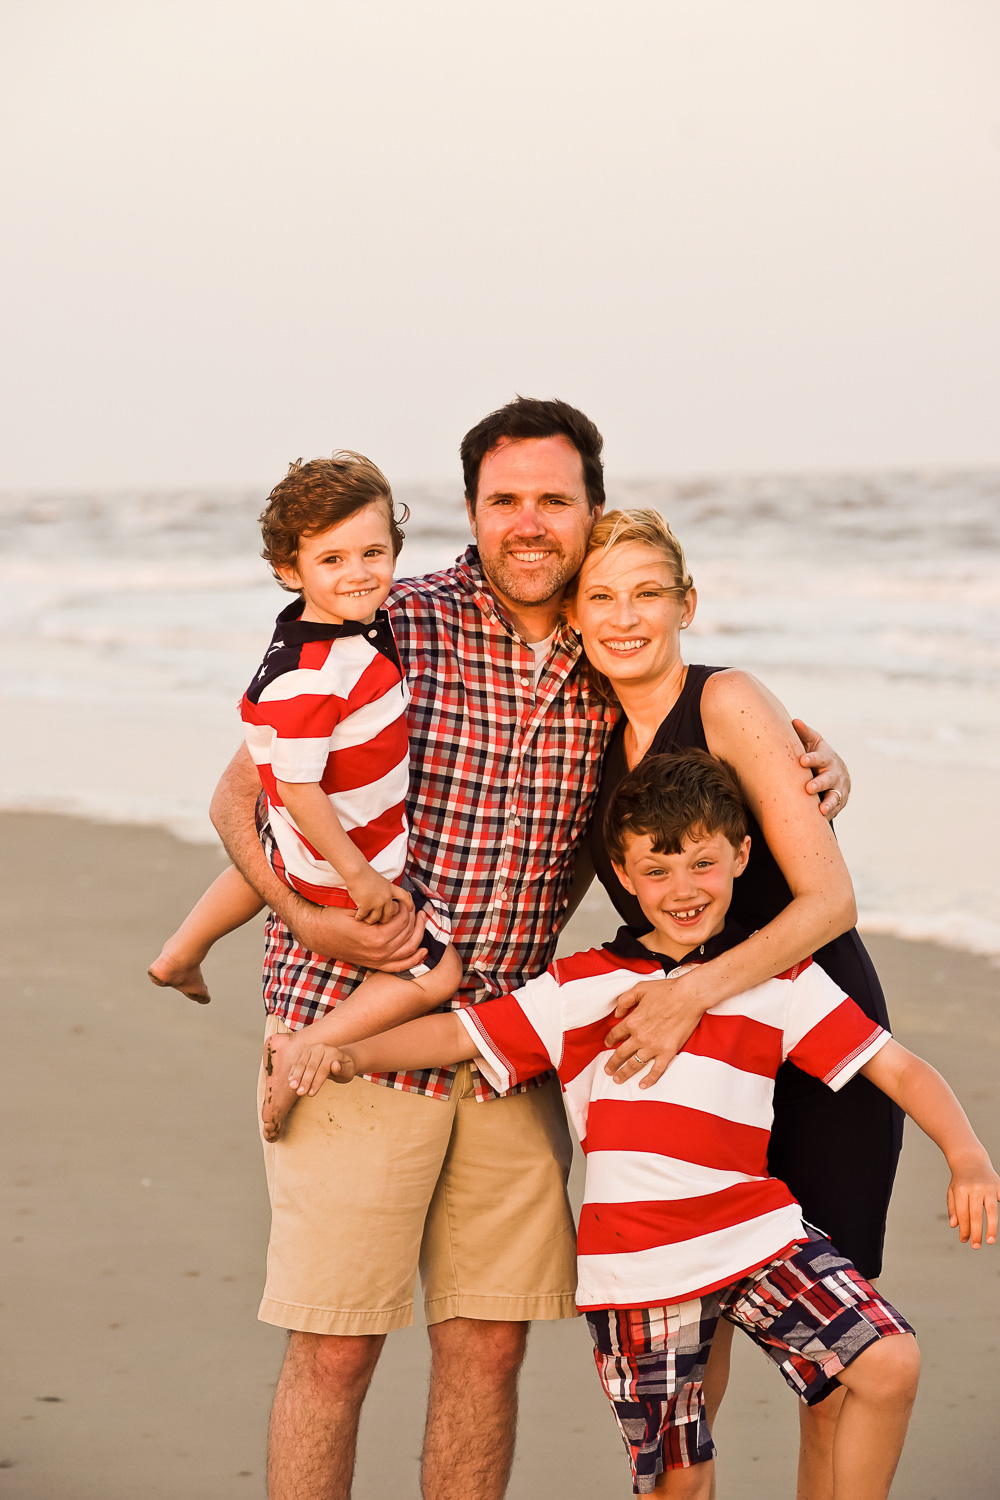 beach_portraits_beaufort-25.jpg